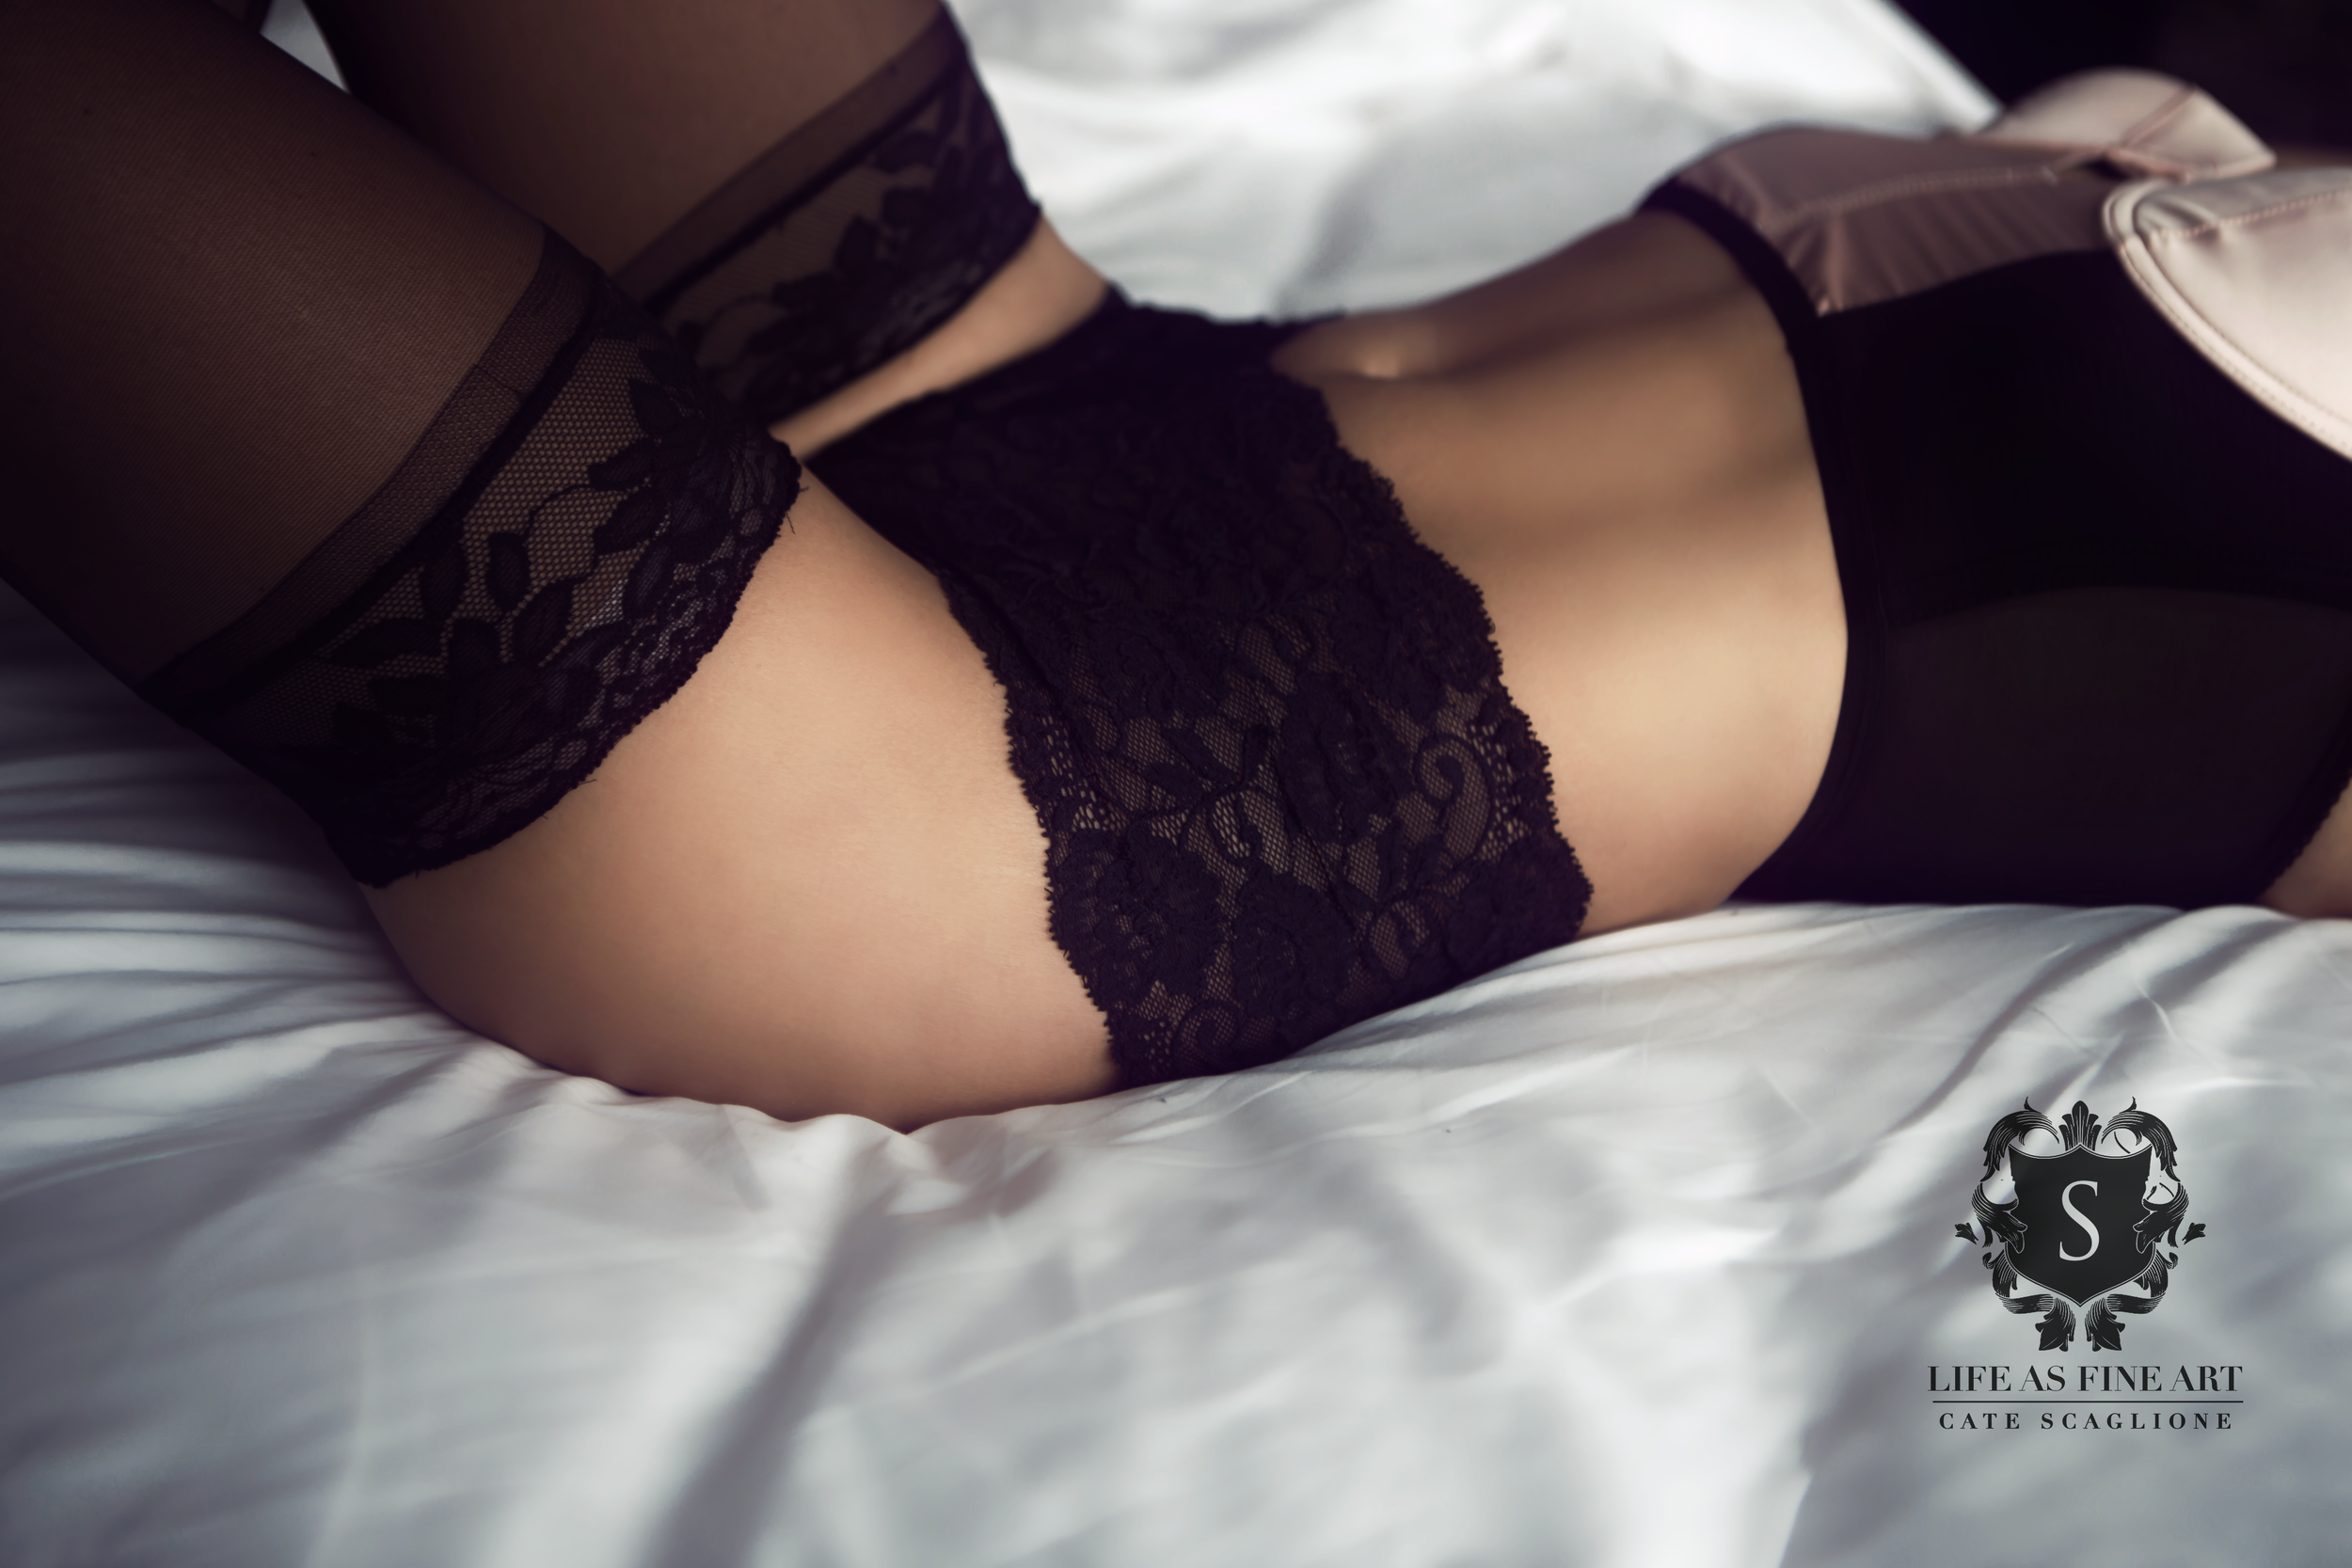 Choosing lingerie for your session can be a lot of fun when you know what to look for...NJ & NYC Boudoir Photographer Cate Scaglione can help.